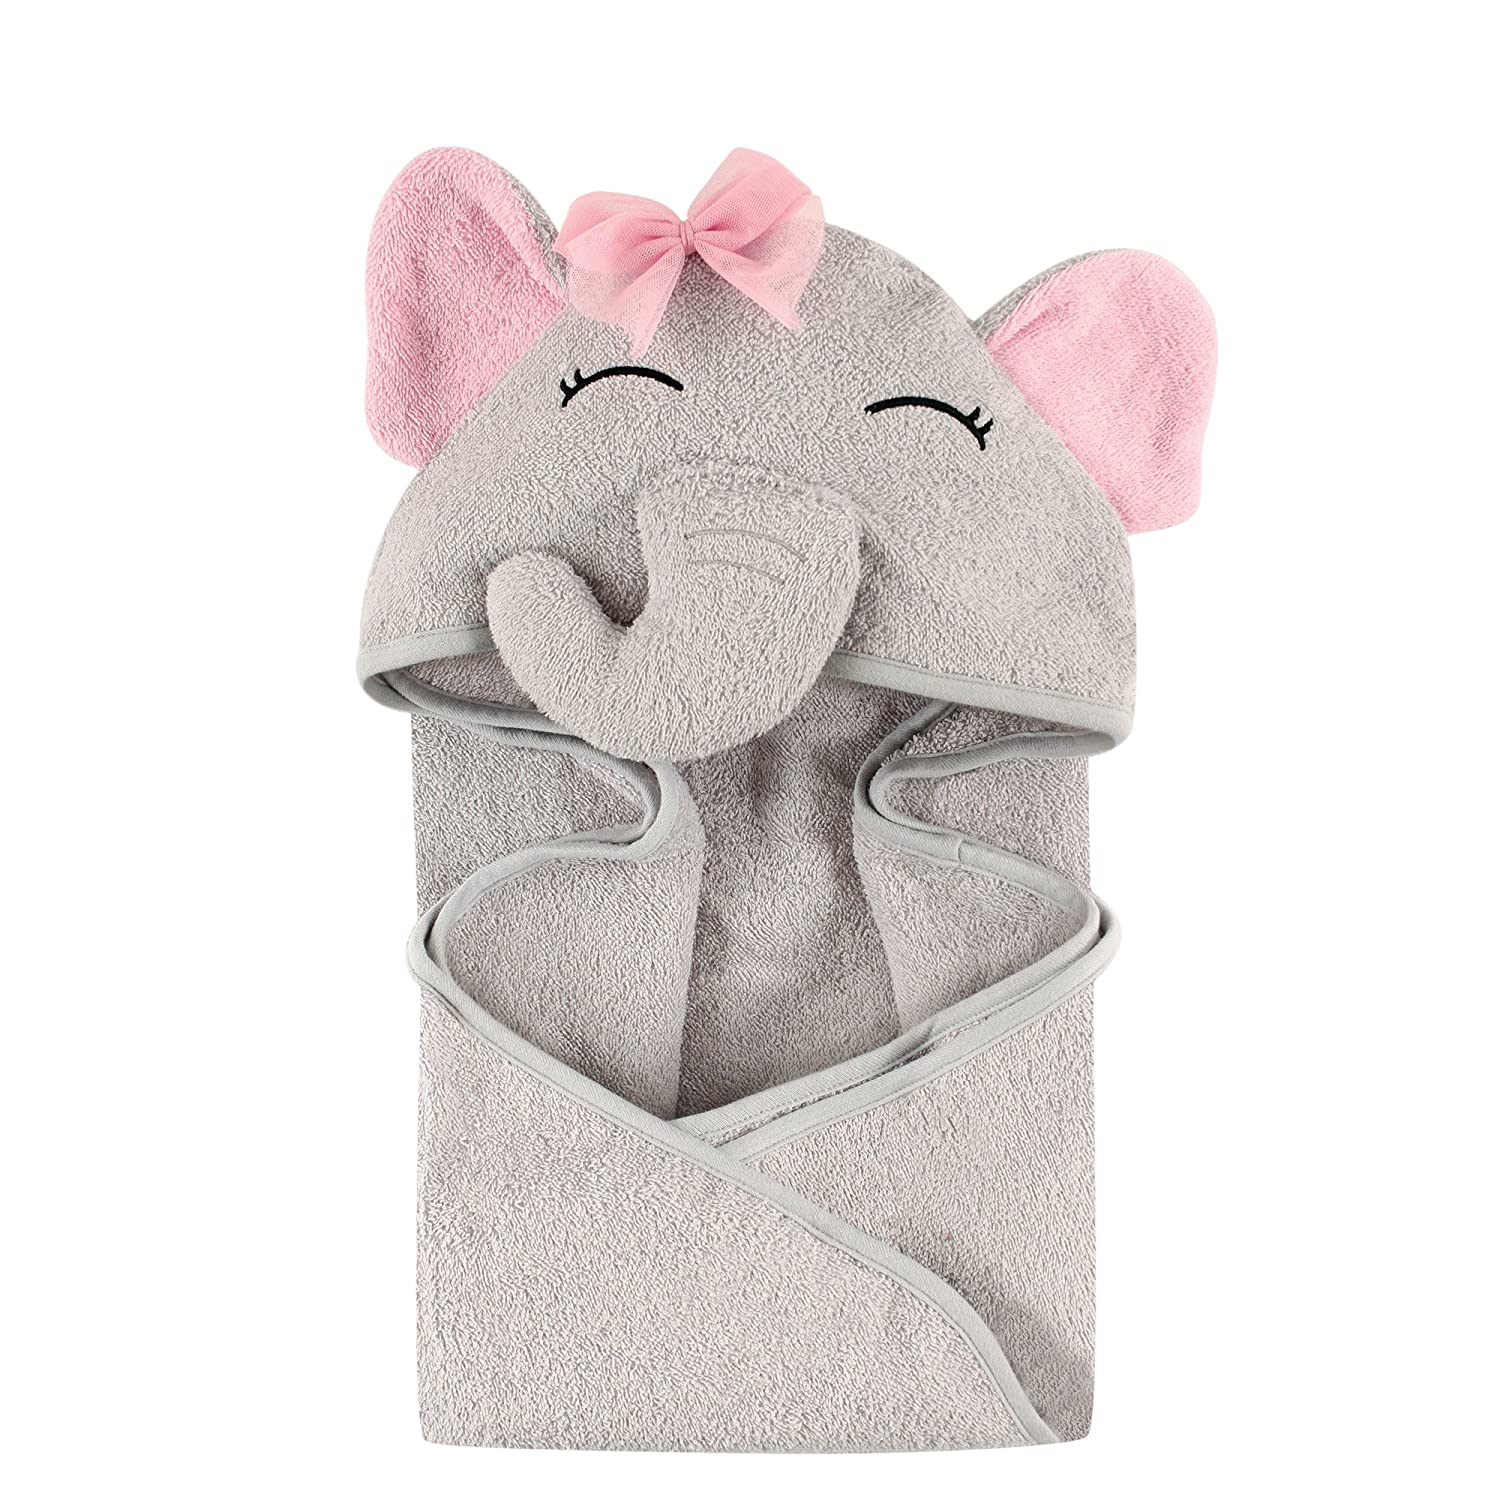 Hudson Baby Unisex Baby Animal Face Hooded Towel, Pretty Elephant